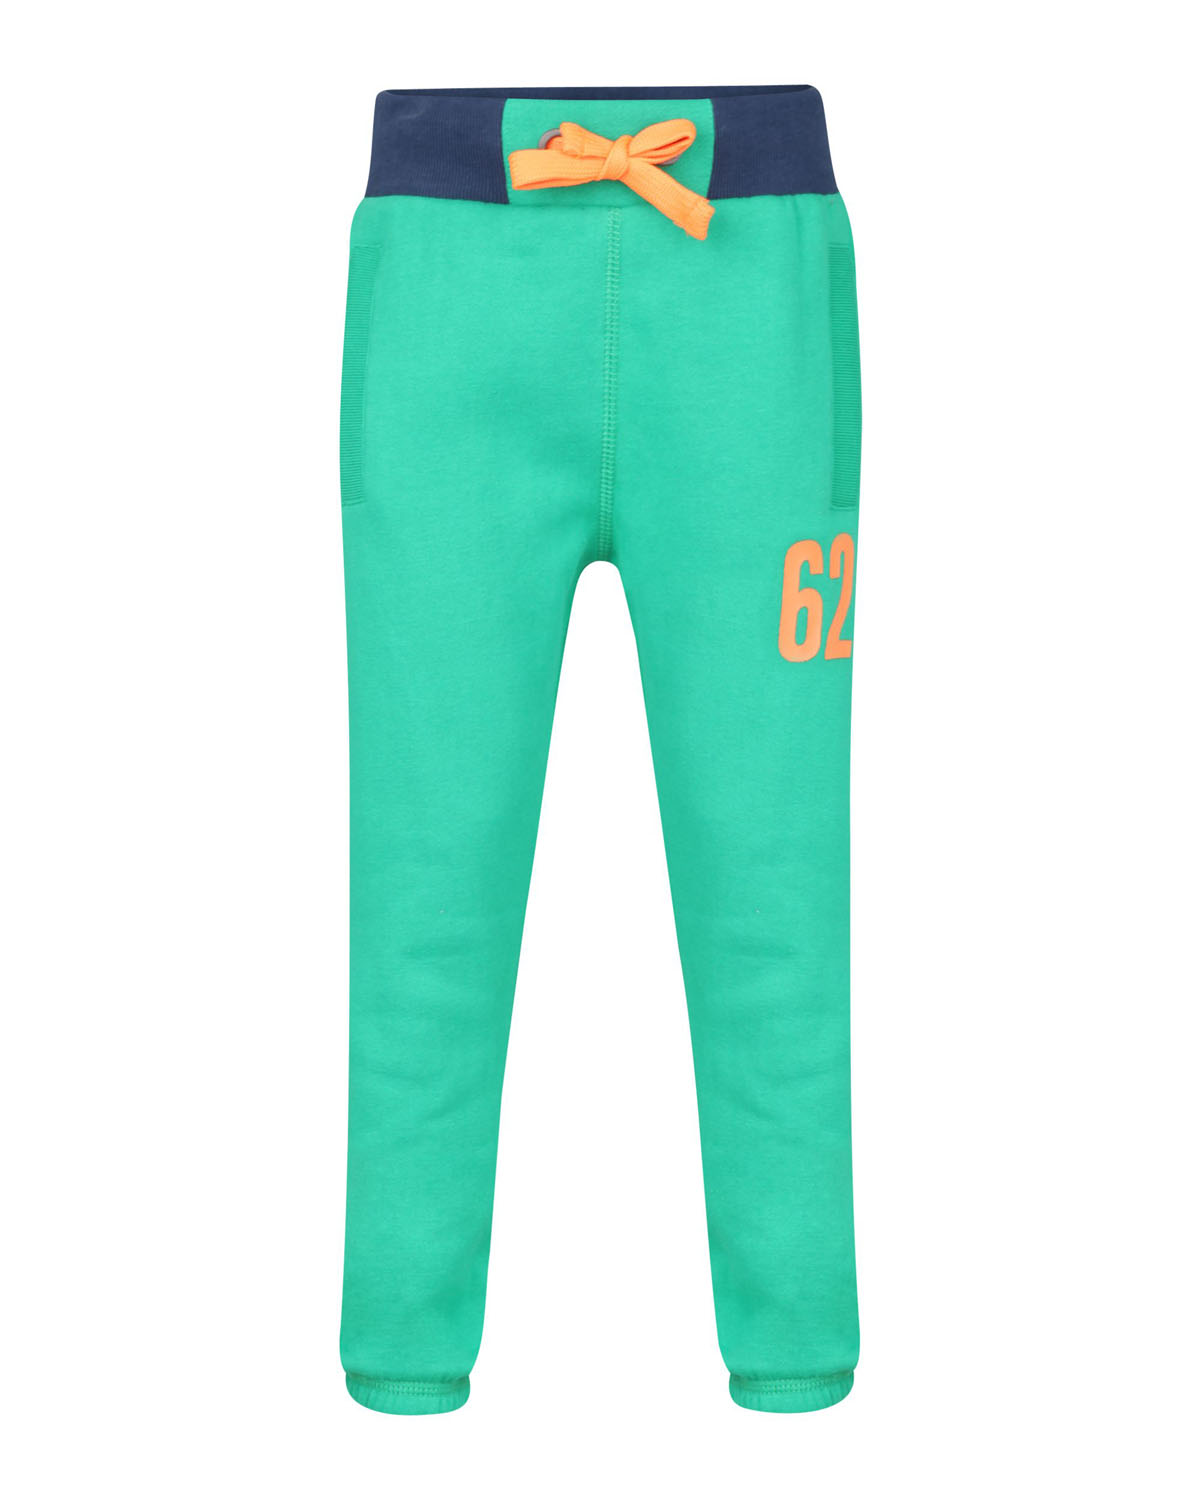 Joggingbroek Groen.Jongens Joggingbroek 77641793 We Fashion